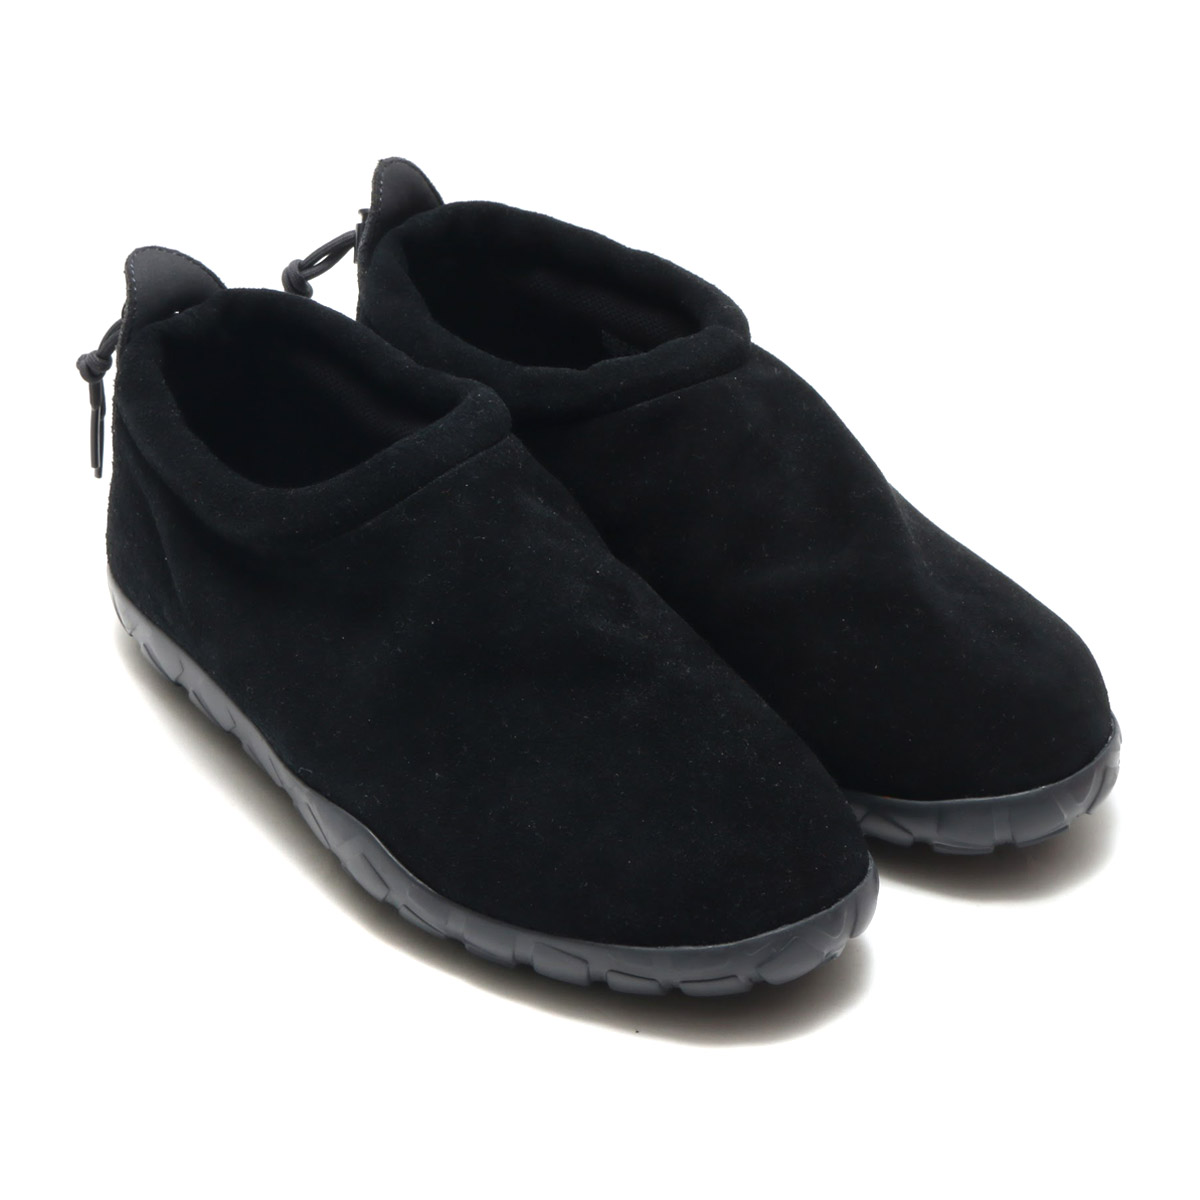 the latest 2d3f3 e68c0 The appearance of the OG-like color where is good from AIR MOC ULTRA in  fall and winter. EASY ON EASY OFF model to match various styles.